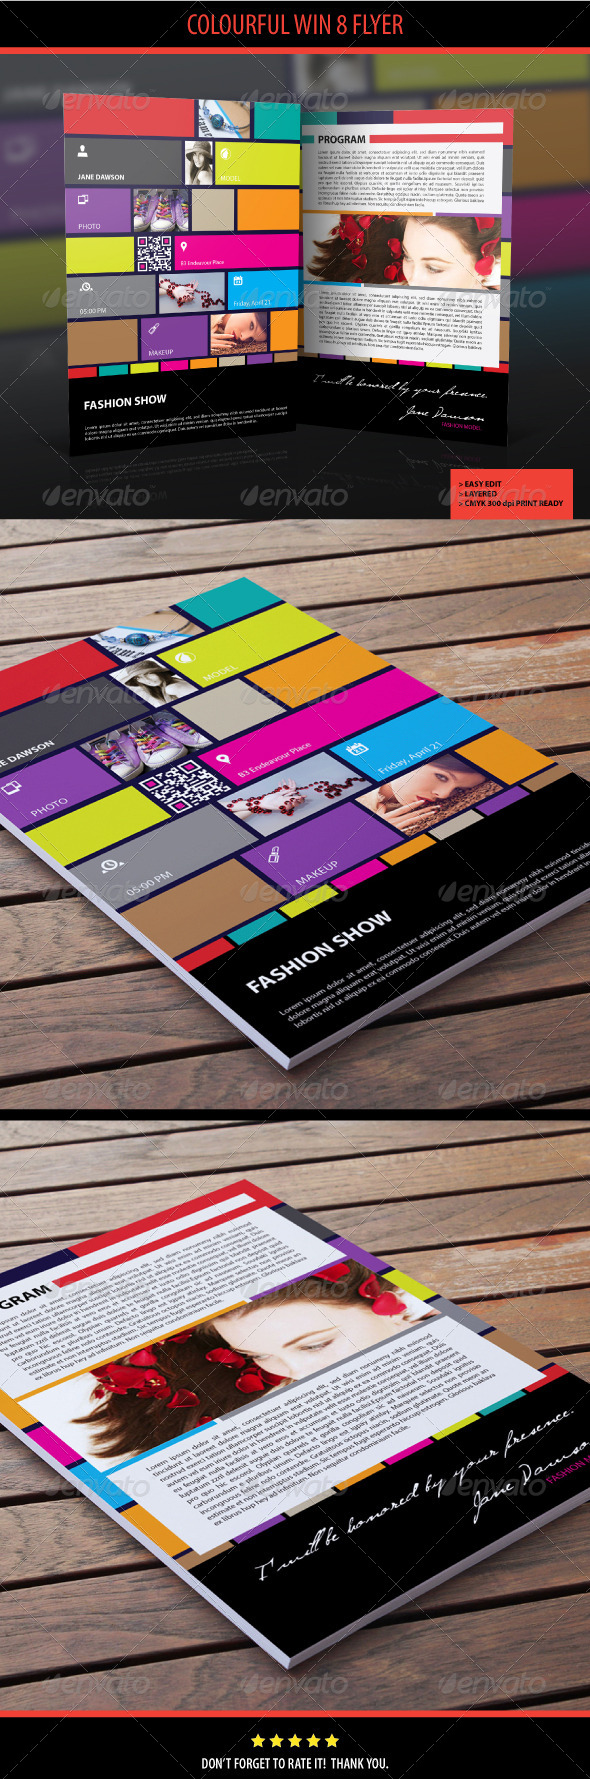 GraphicRiver Colourful Win 8 Flyer 4554286